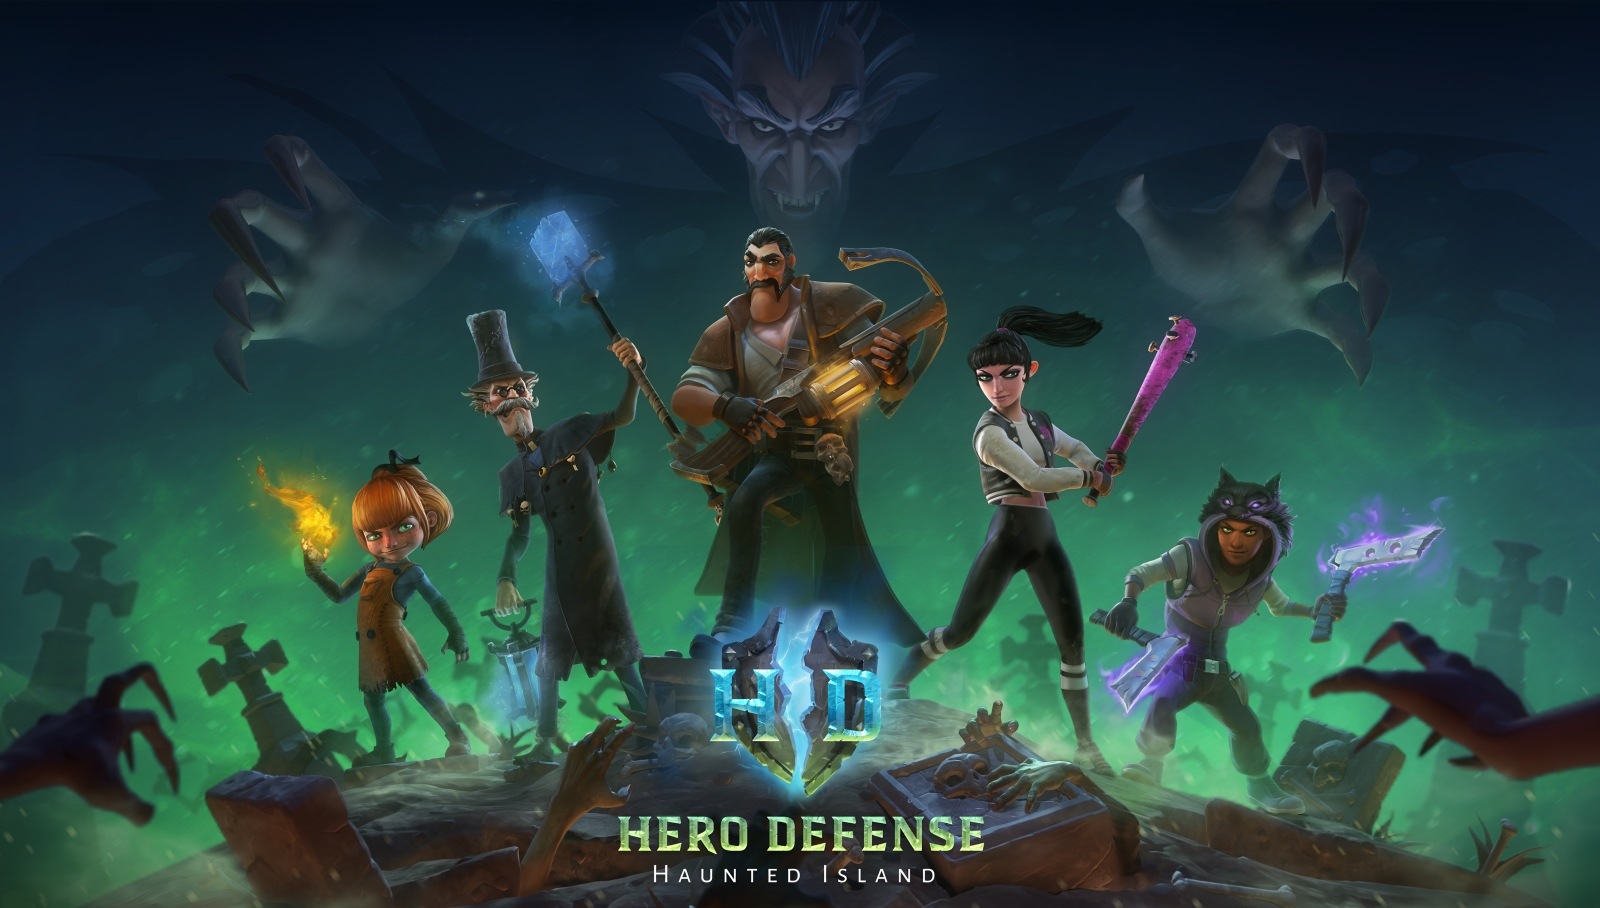 Hero Defense - Haunted Island Officially Launches on Steam